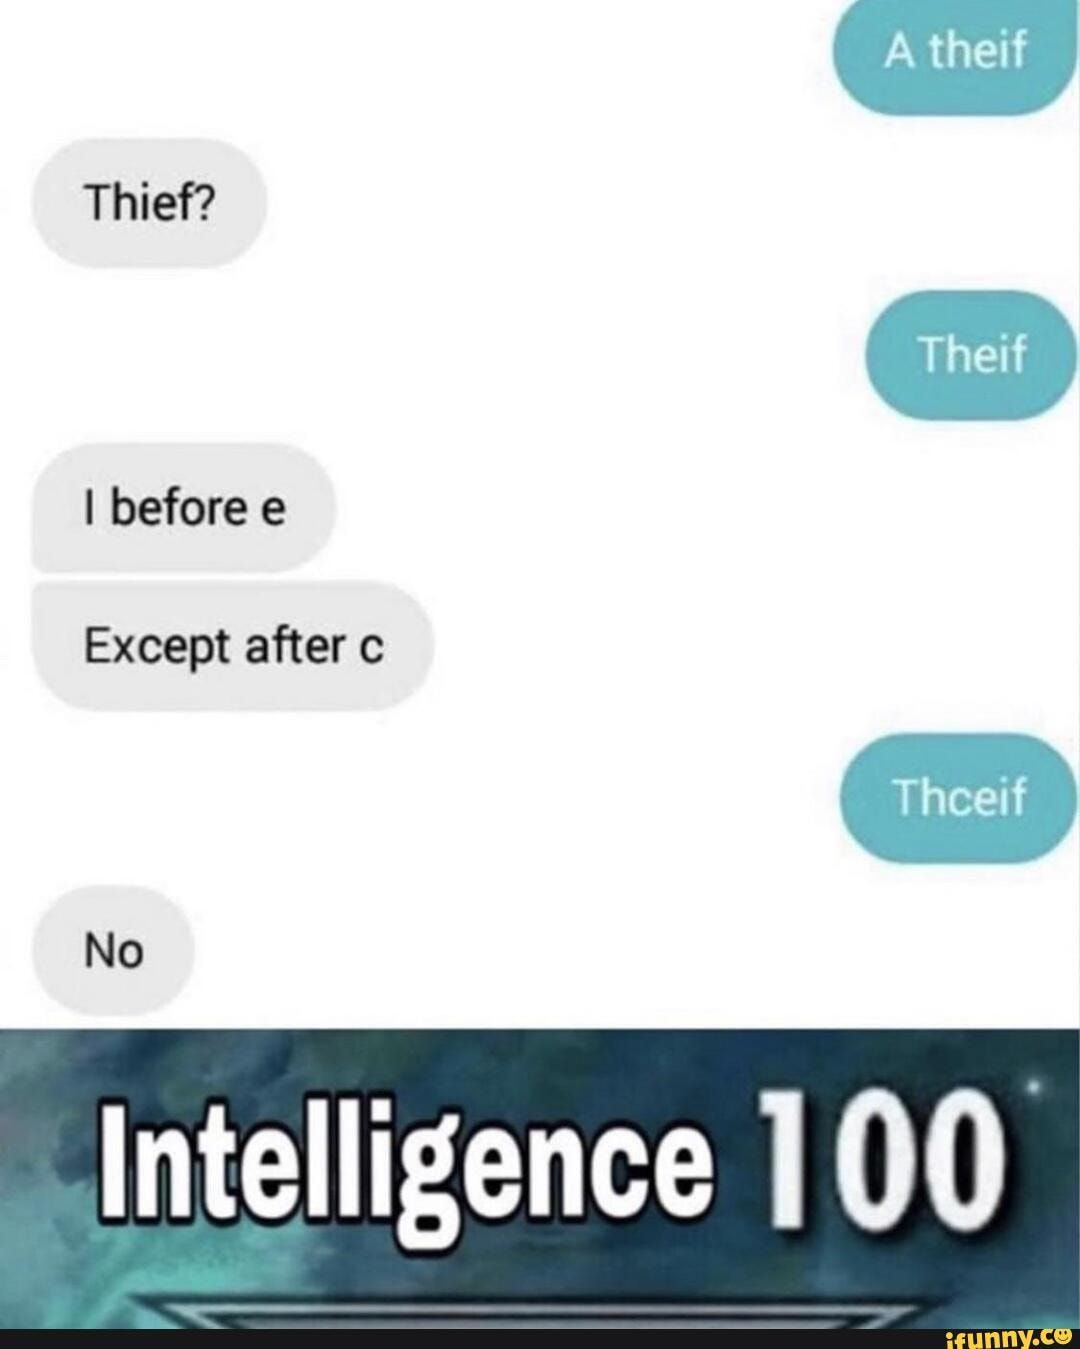 Thief? I before e Except after c No Intelligence 100 - )